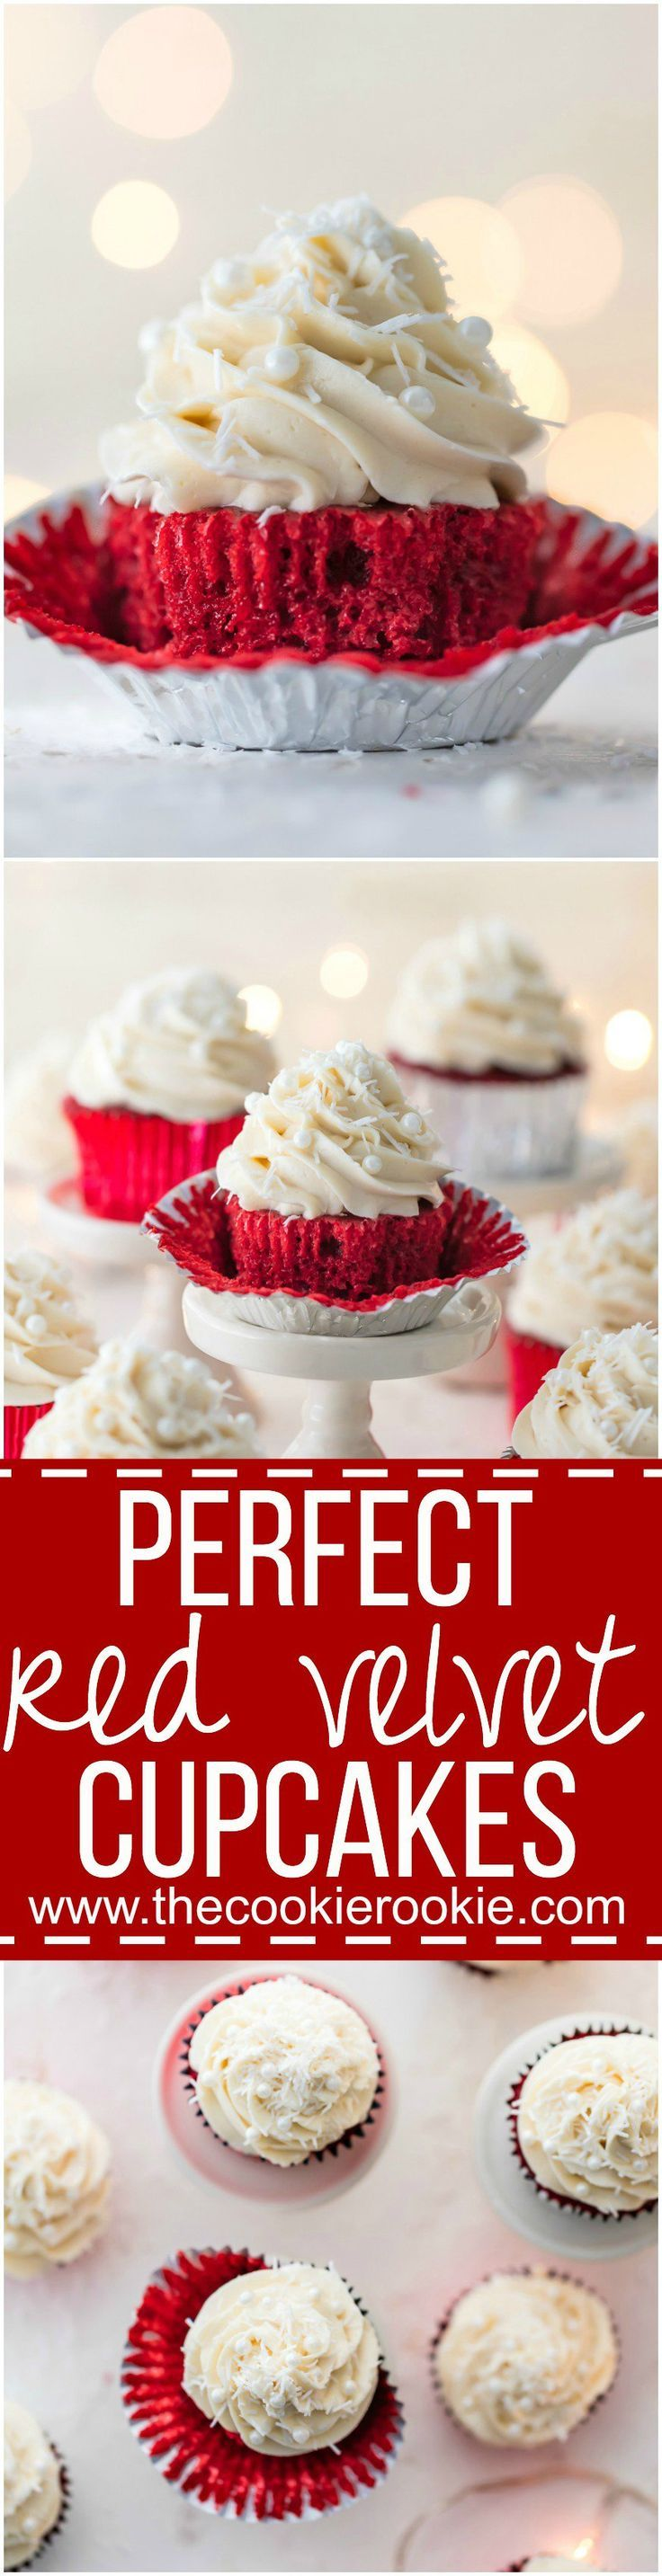 Perfect Red Velvet Cupcakes - The ultimate holiday dessert! You haven't lived unless you've tried these classic cupcakes with the most amazing cream cheese icing! Classic, delicious, and perfect. | The Cookie Rookie